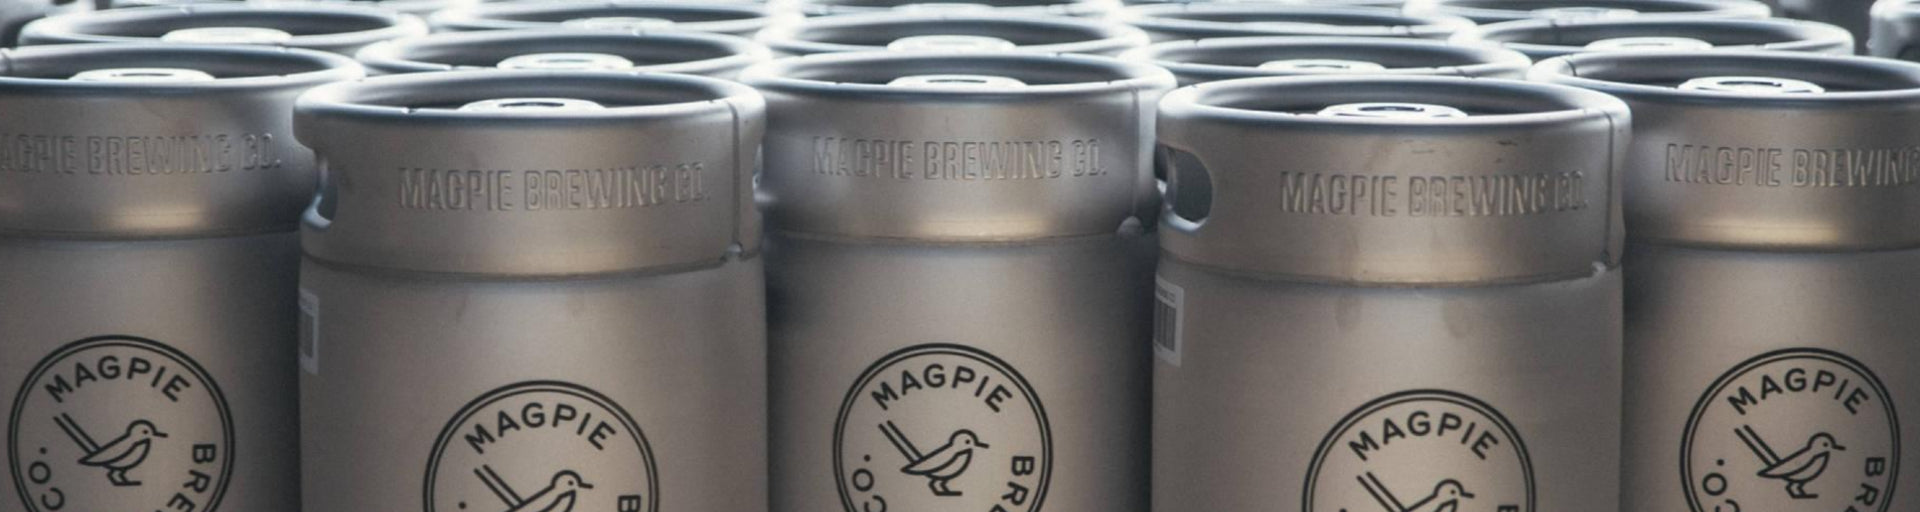 Magpie Brewing Co - Jeju